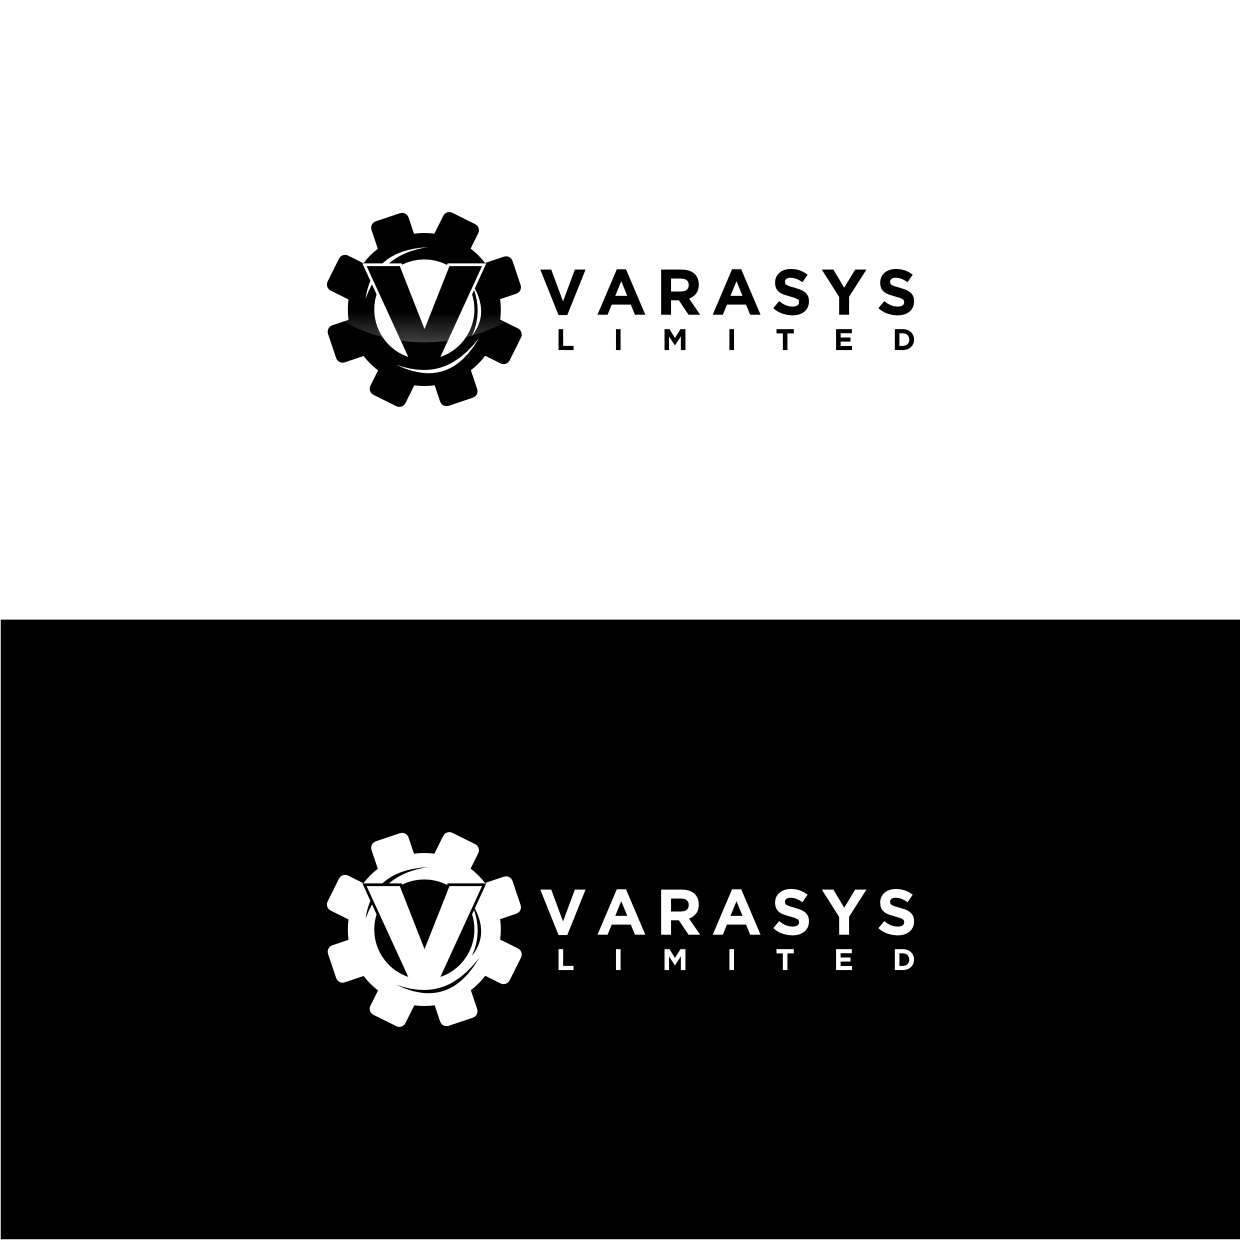 Logo Design by Analla Art - Entry No. 4 in the Logo Design Contest Artistic Logo Design for VARASYS Limited.